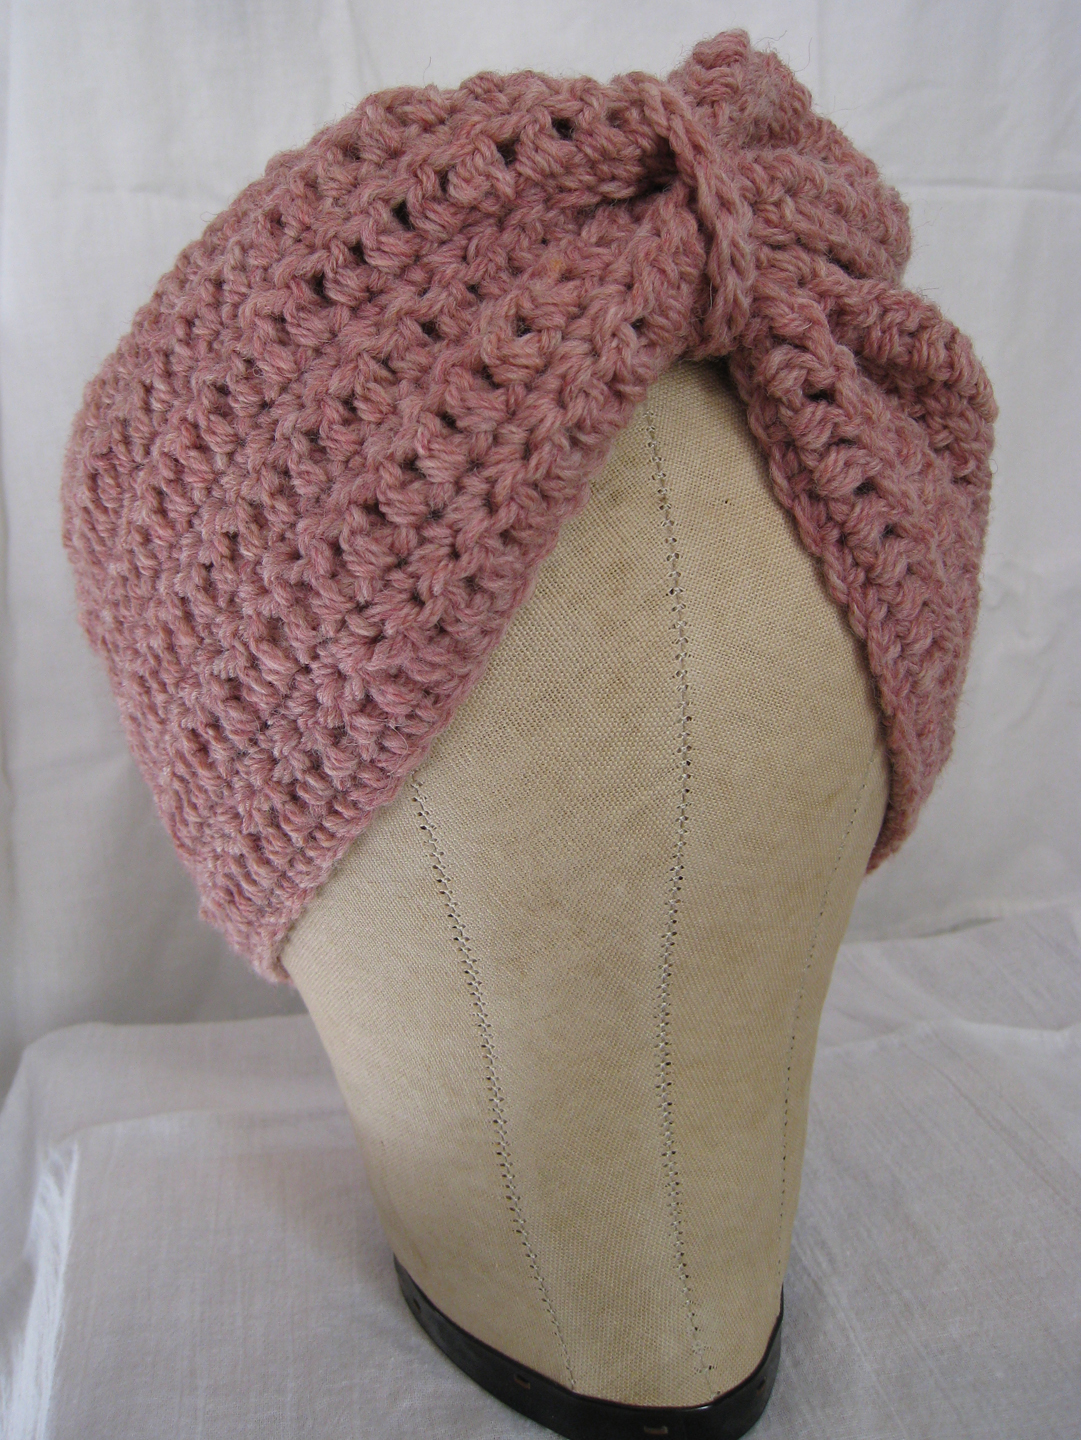 Crochet Pattern Turban Hat : crochet turban Cut And Sewn